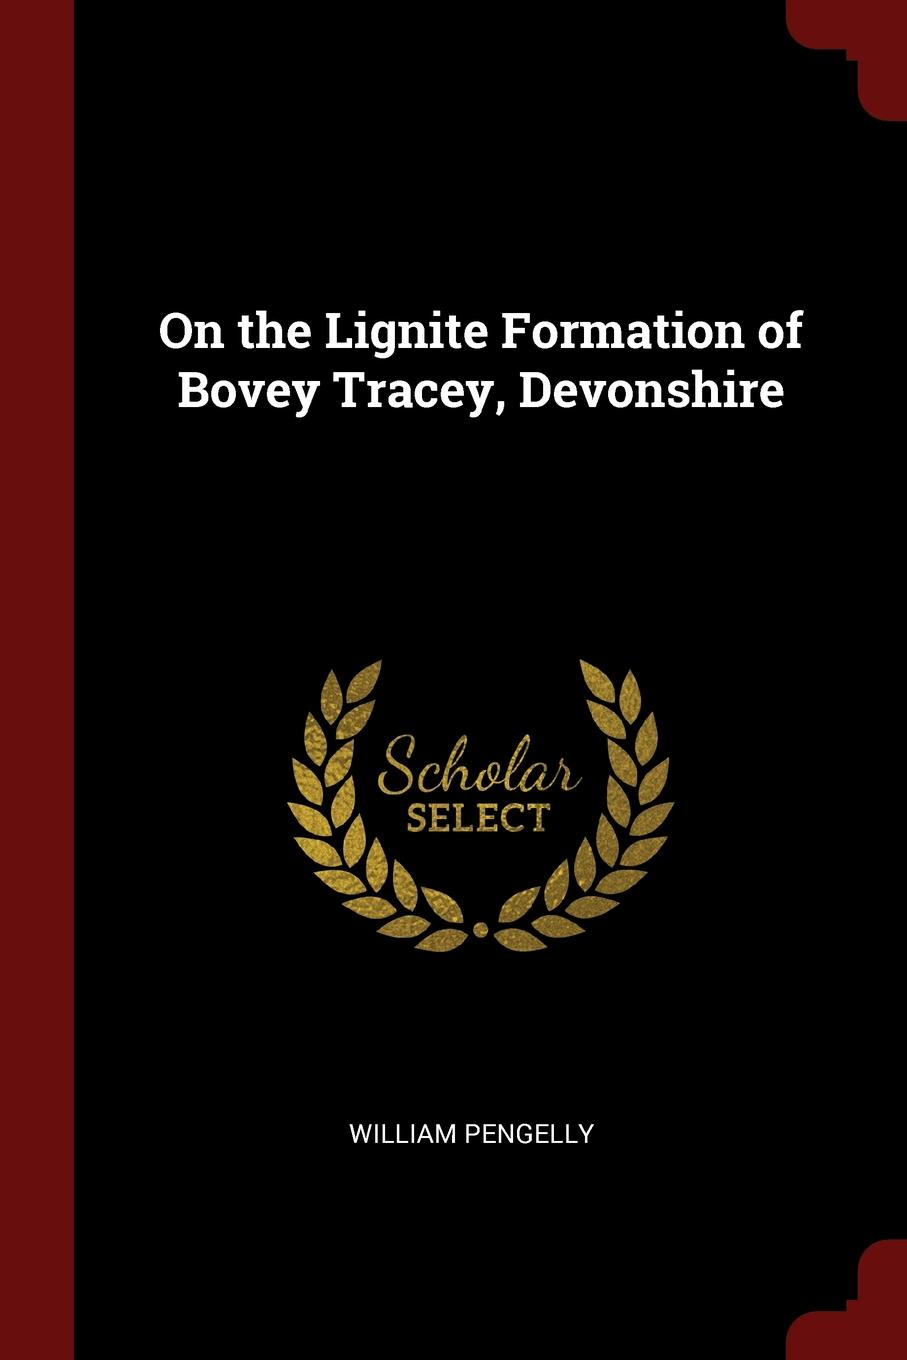 William Pengelly On the Lignite Formation of Bovey Tracey, Devonshire